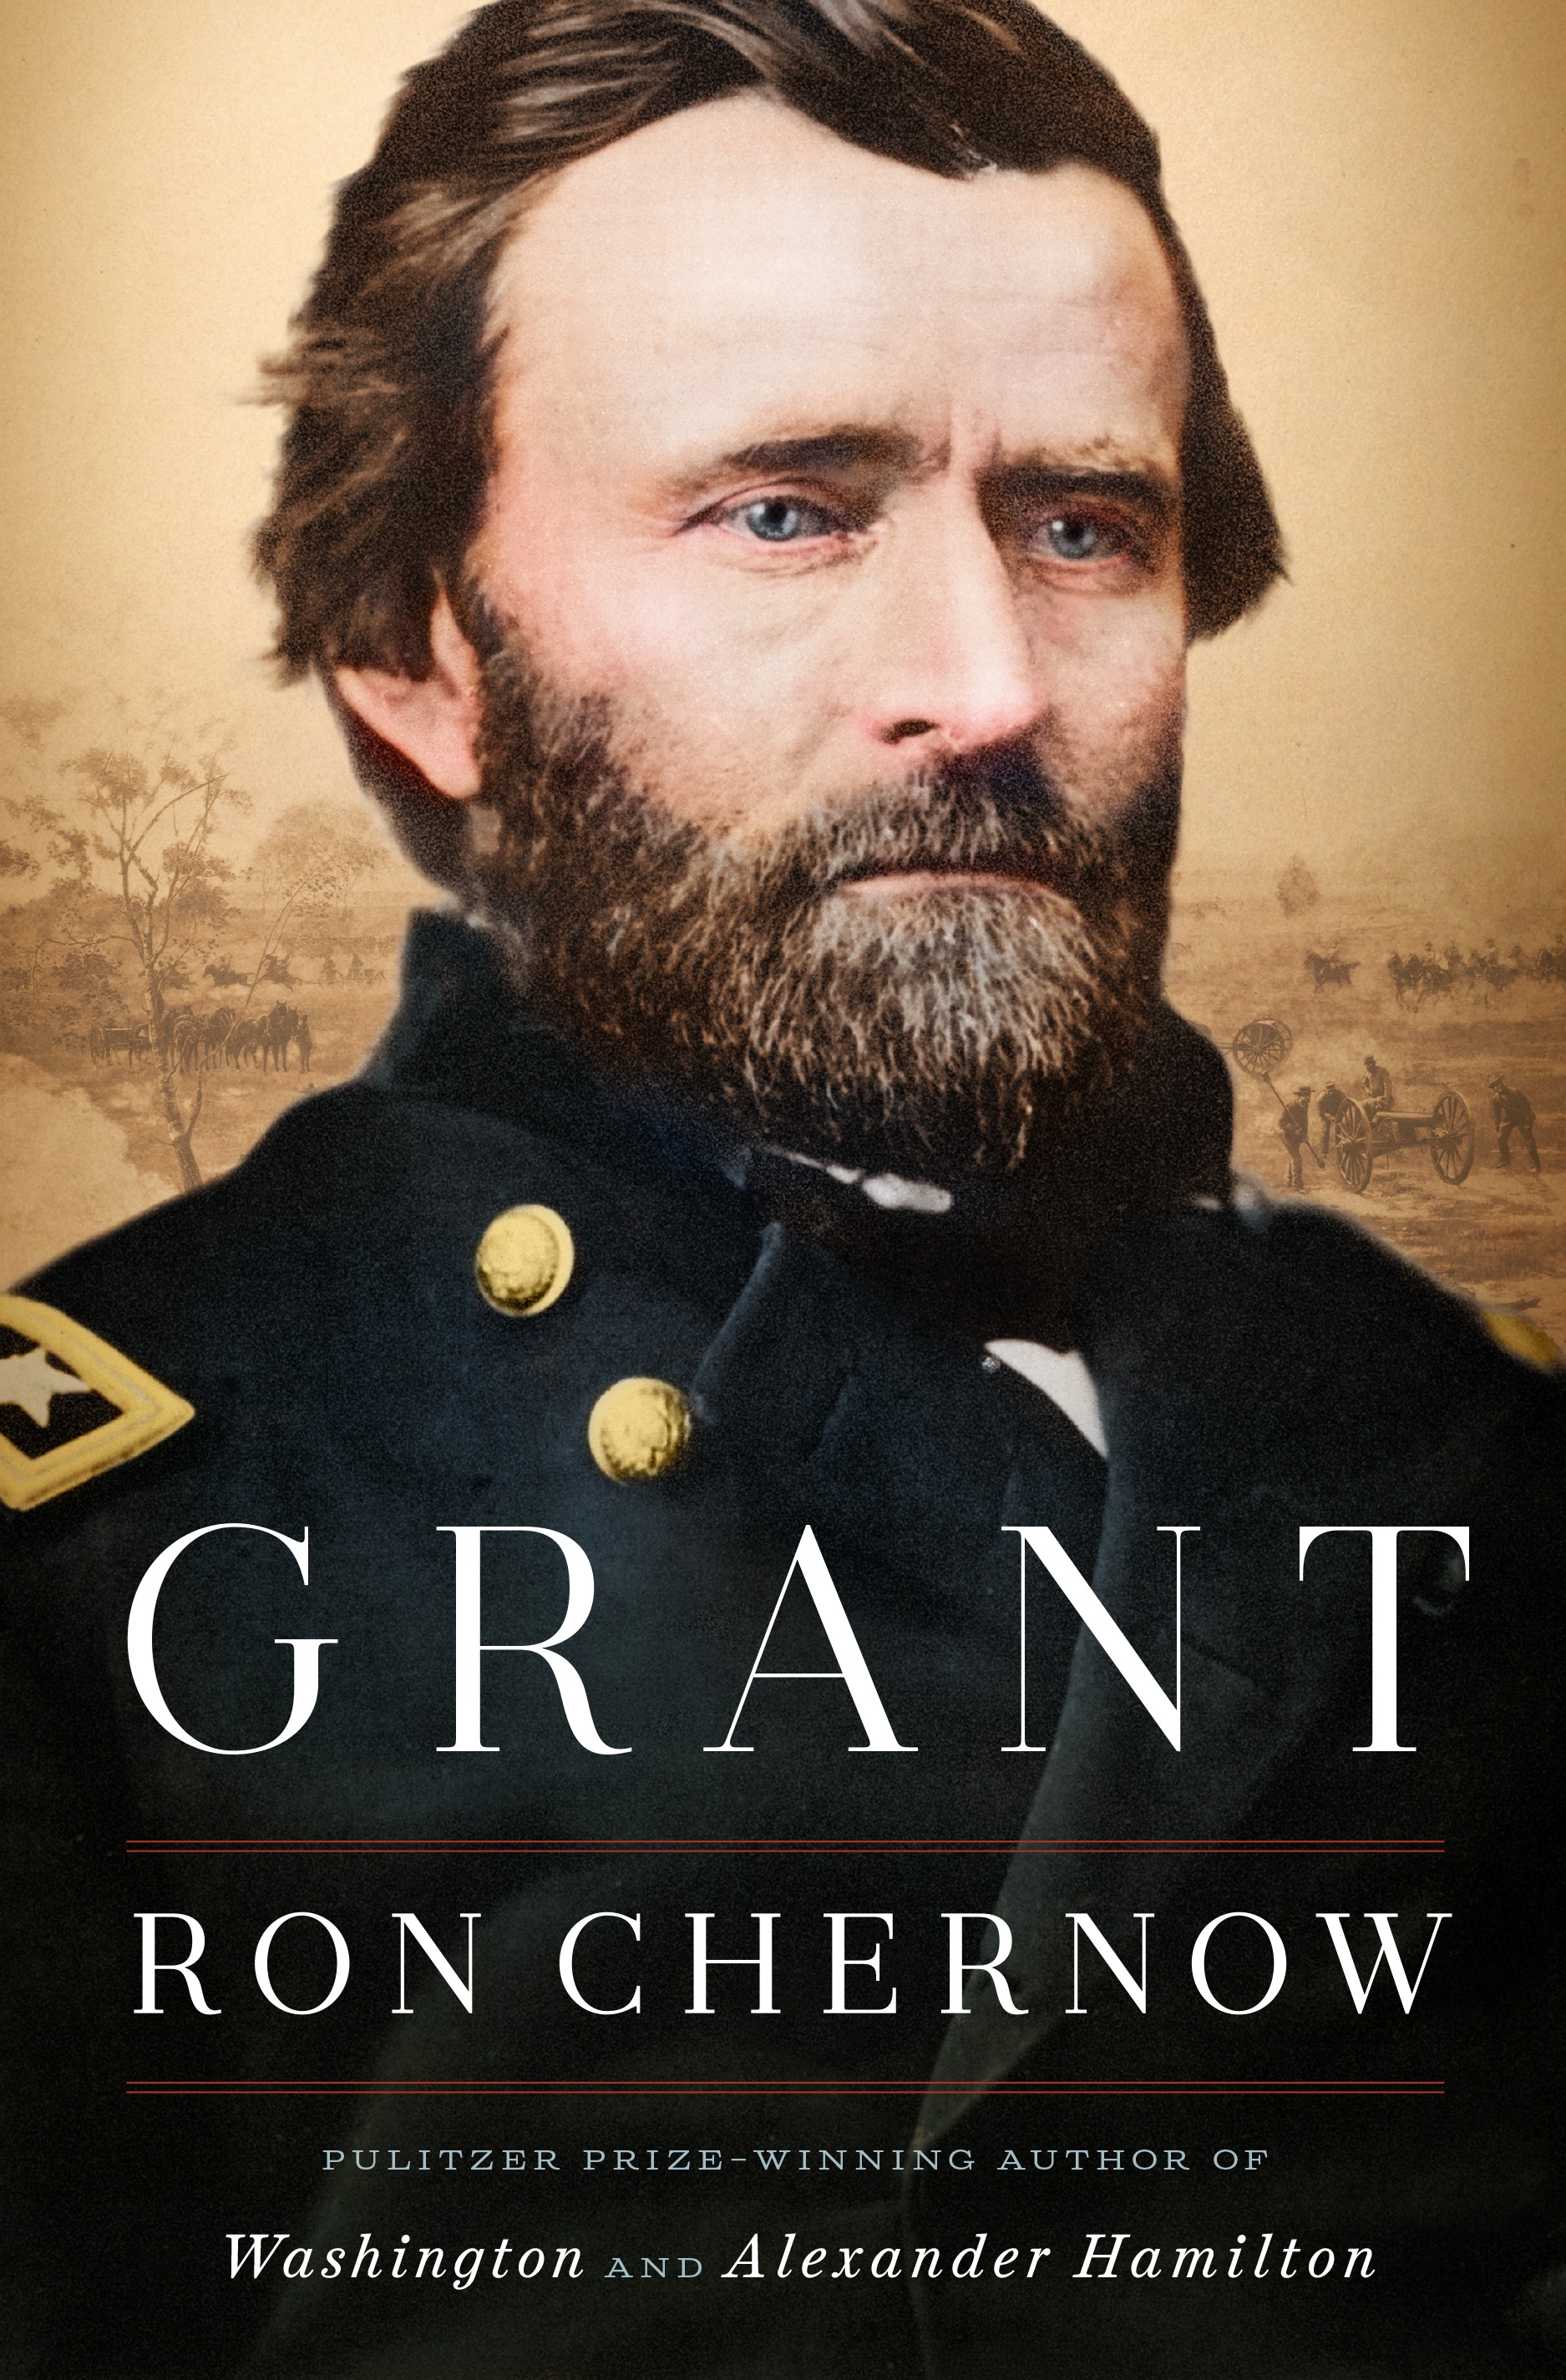 Grant Book Cover Image.jpg